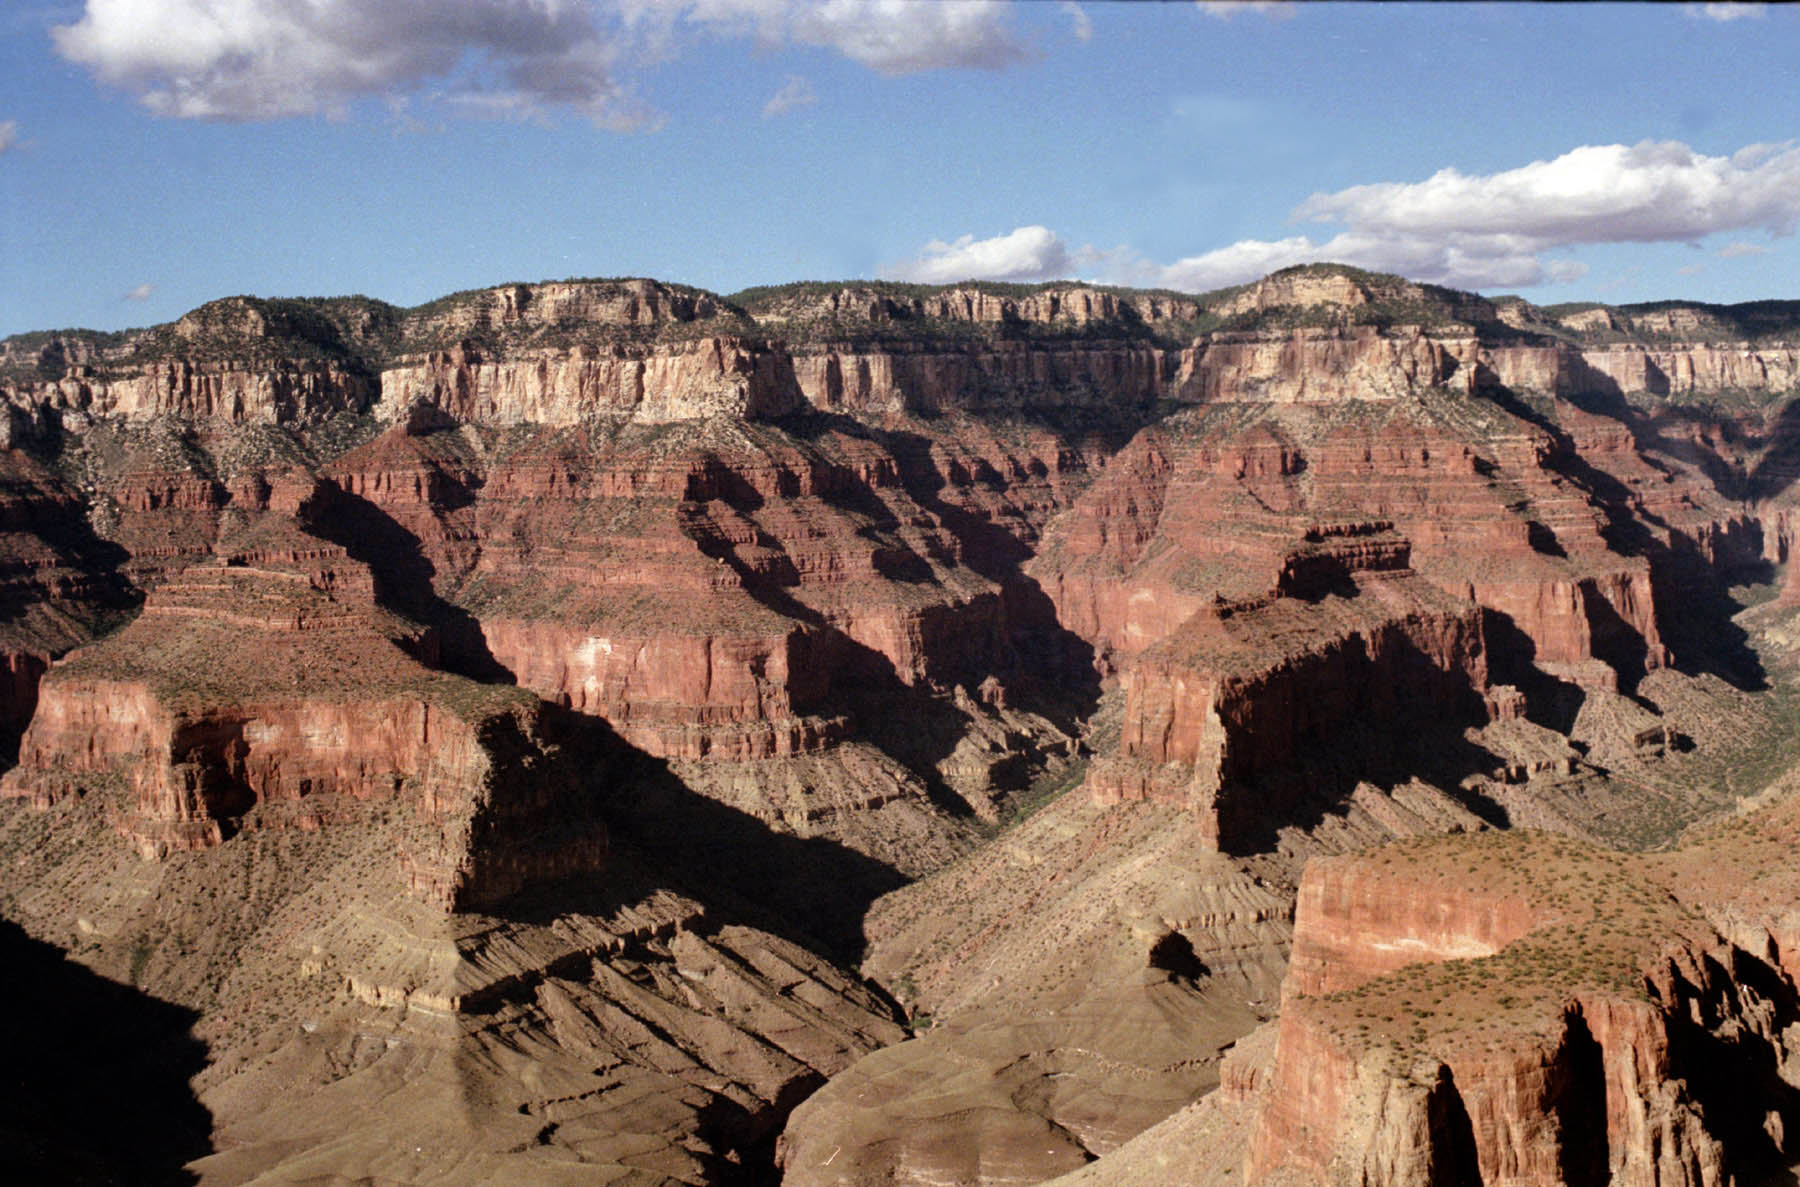 Grand Canyon, U.S.A, Overlook